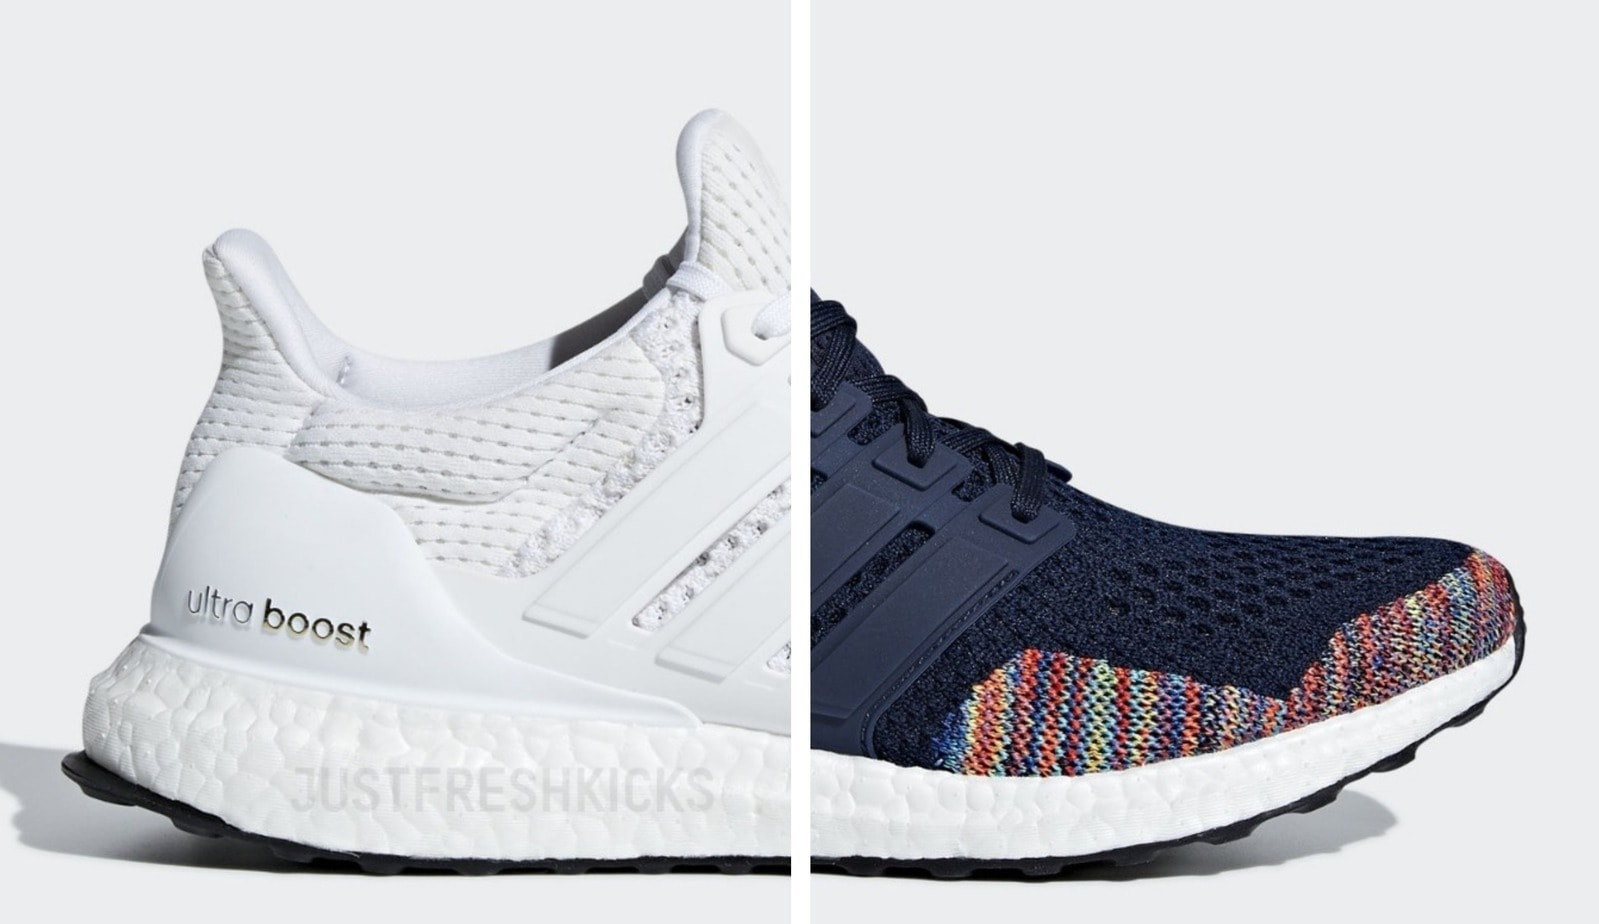 c2cf1a2a356 The adidas Ultra Boost was the first shoe to set the tone for modern Three  Stripes sneakers. Now